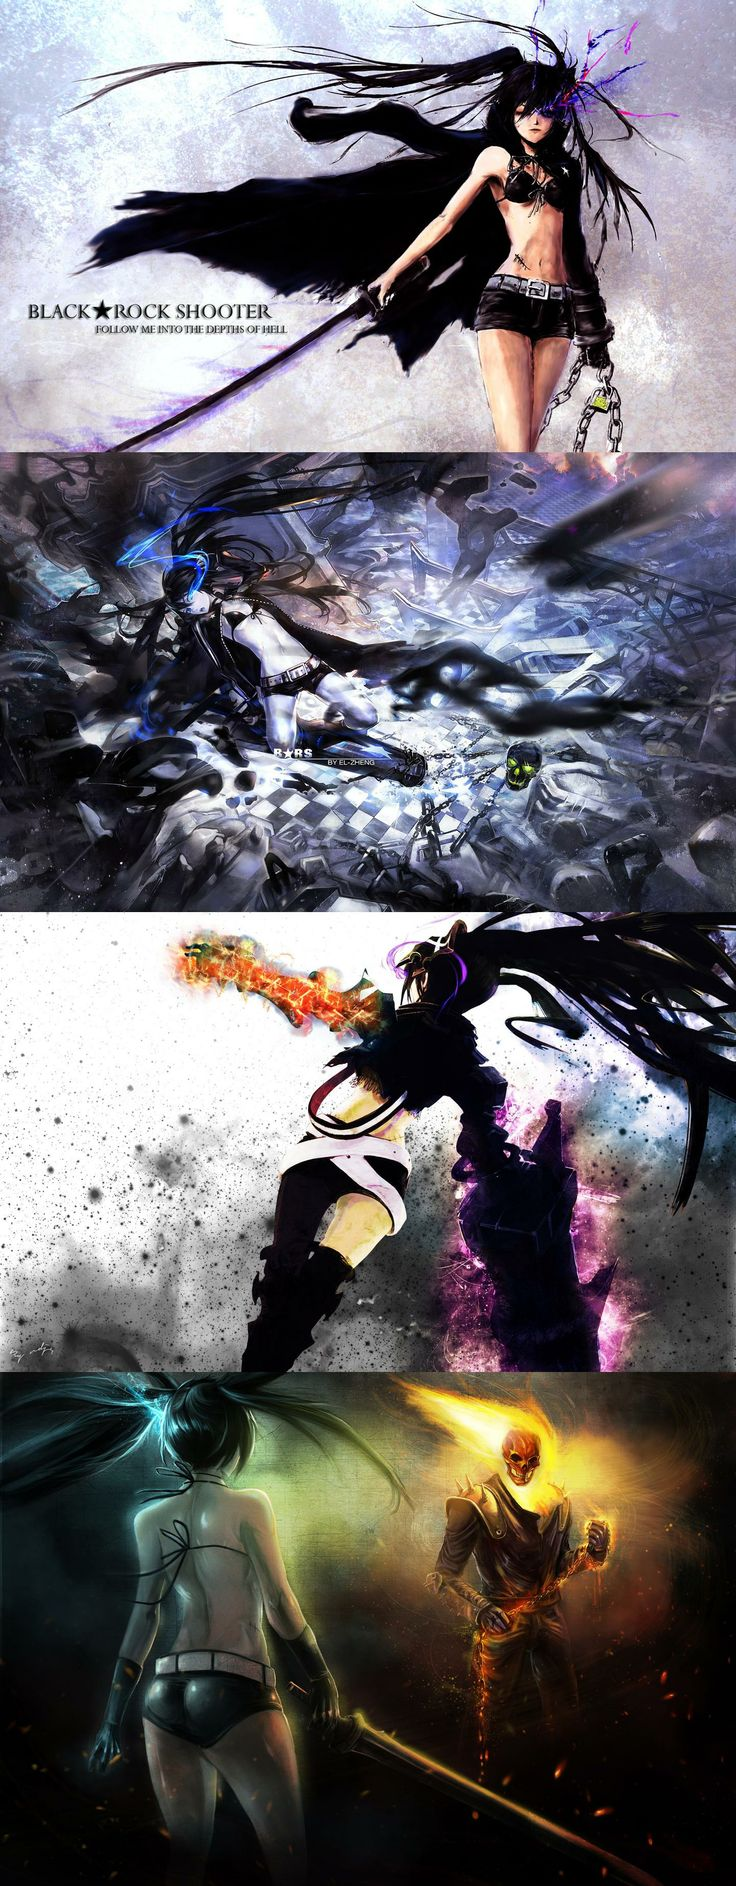 Black Rock Shooter & Ghost Rider